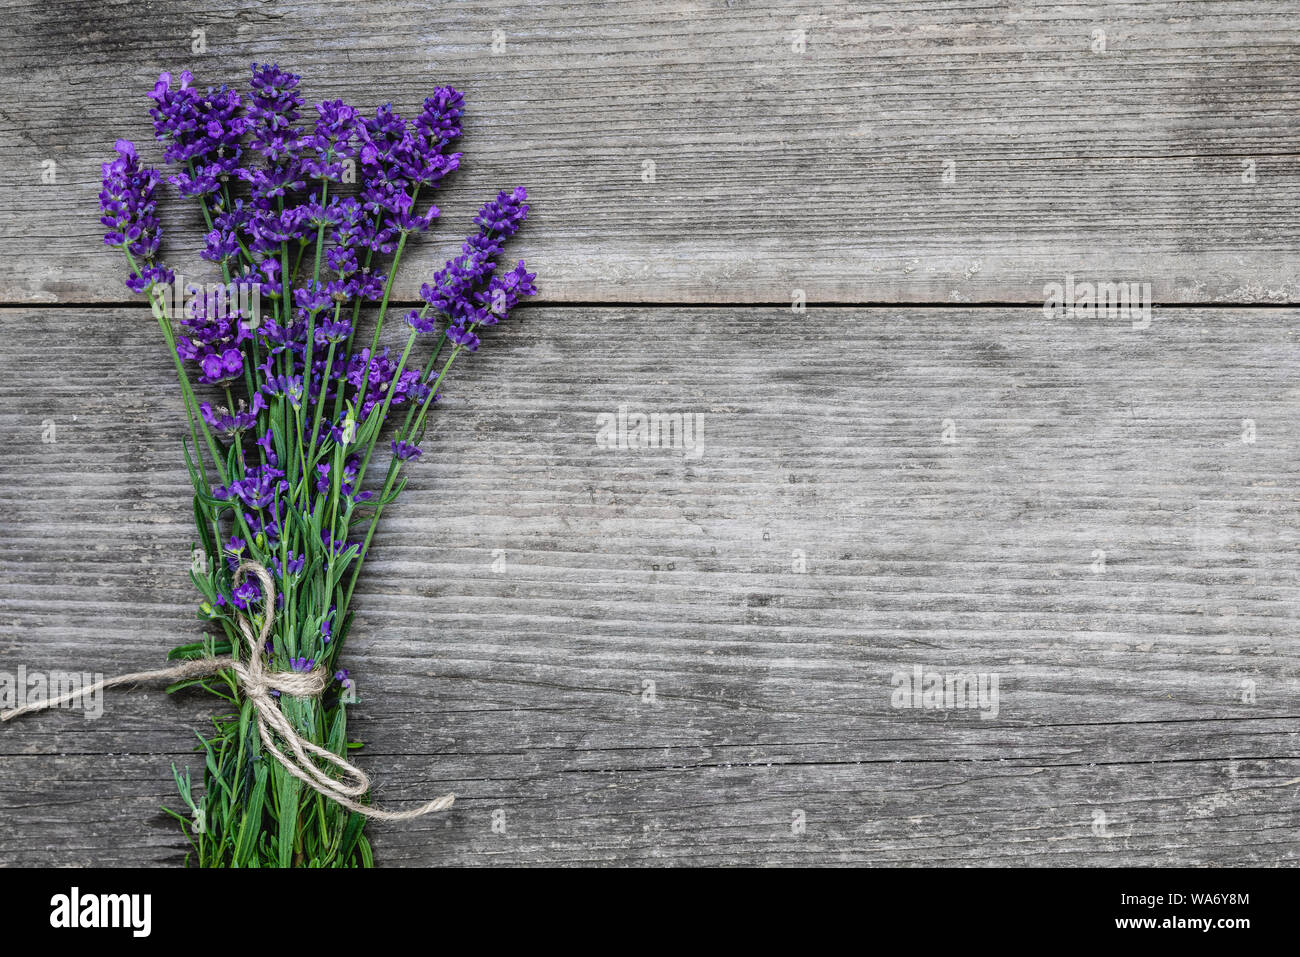 Beautiful Lavender Flowers Bouquet On Rustic Wooden Table With Copy Space For Your Text Top View Flat Lay Wedding Or Womens Day Background Stock Photo Alamy